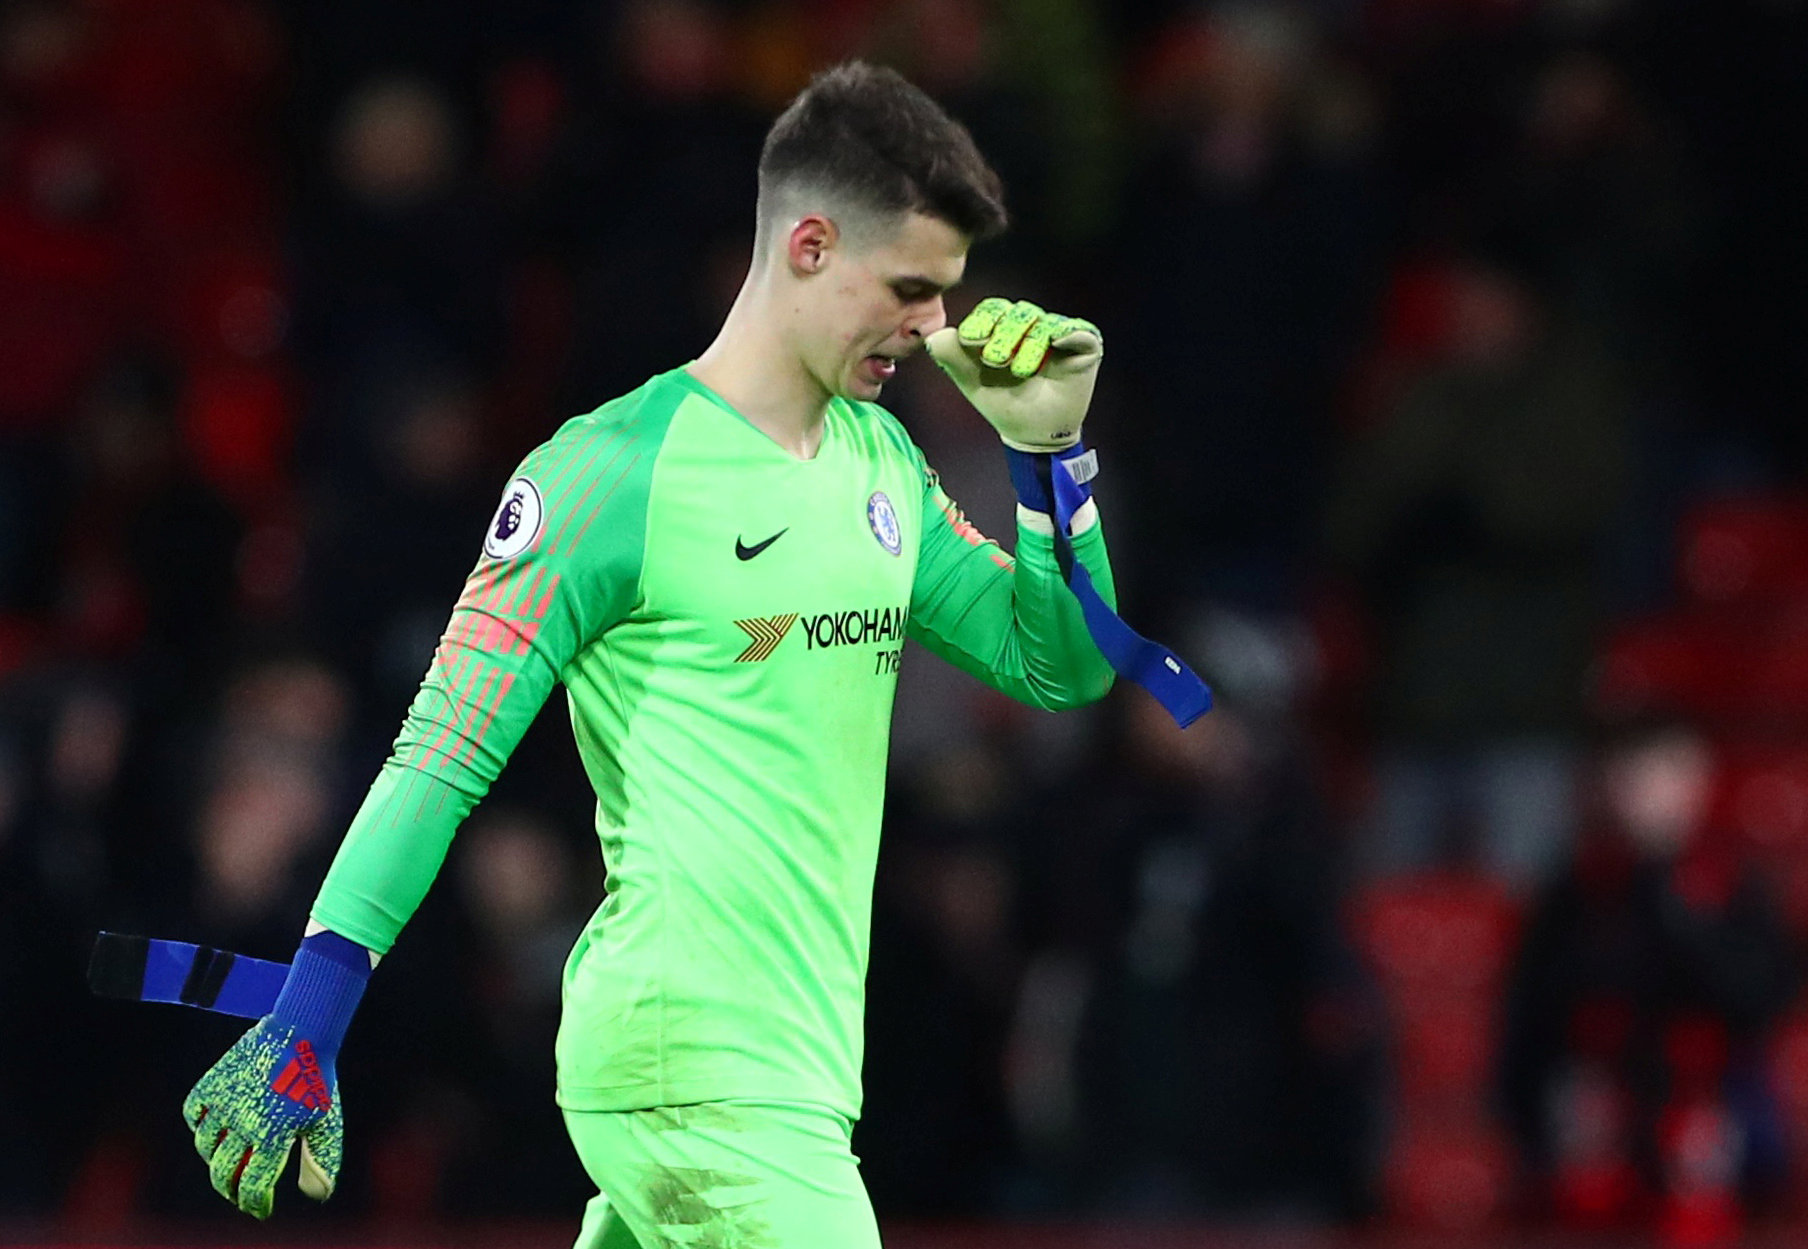 Chelsea FC first team goalkeeper 2019: Kepa Arrizabalaga